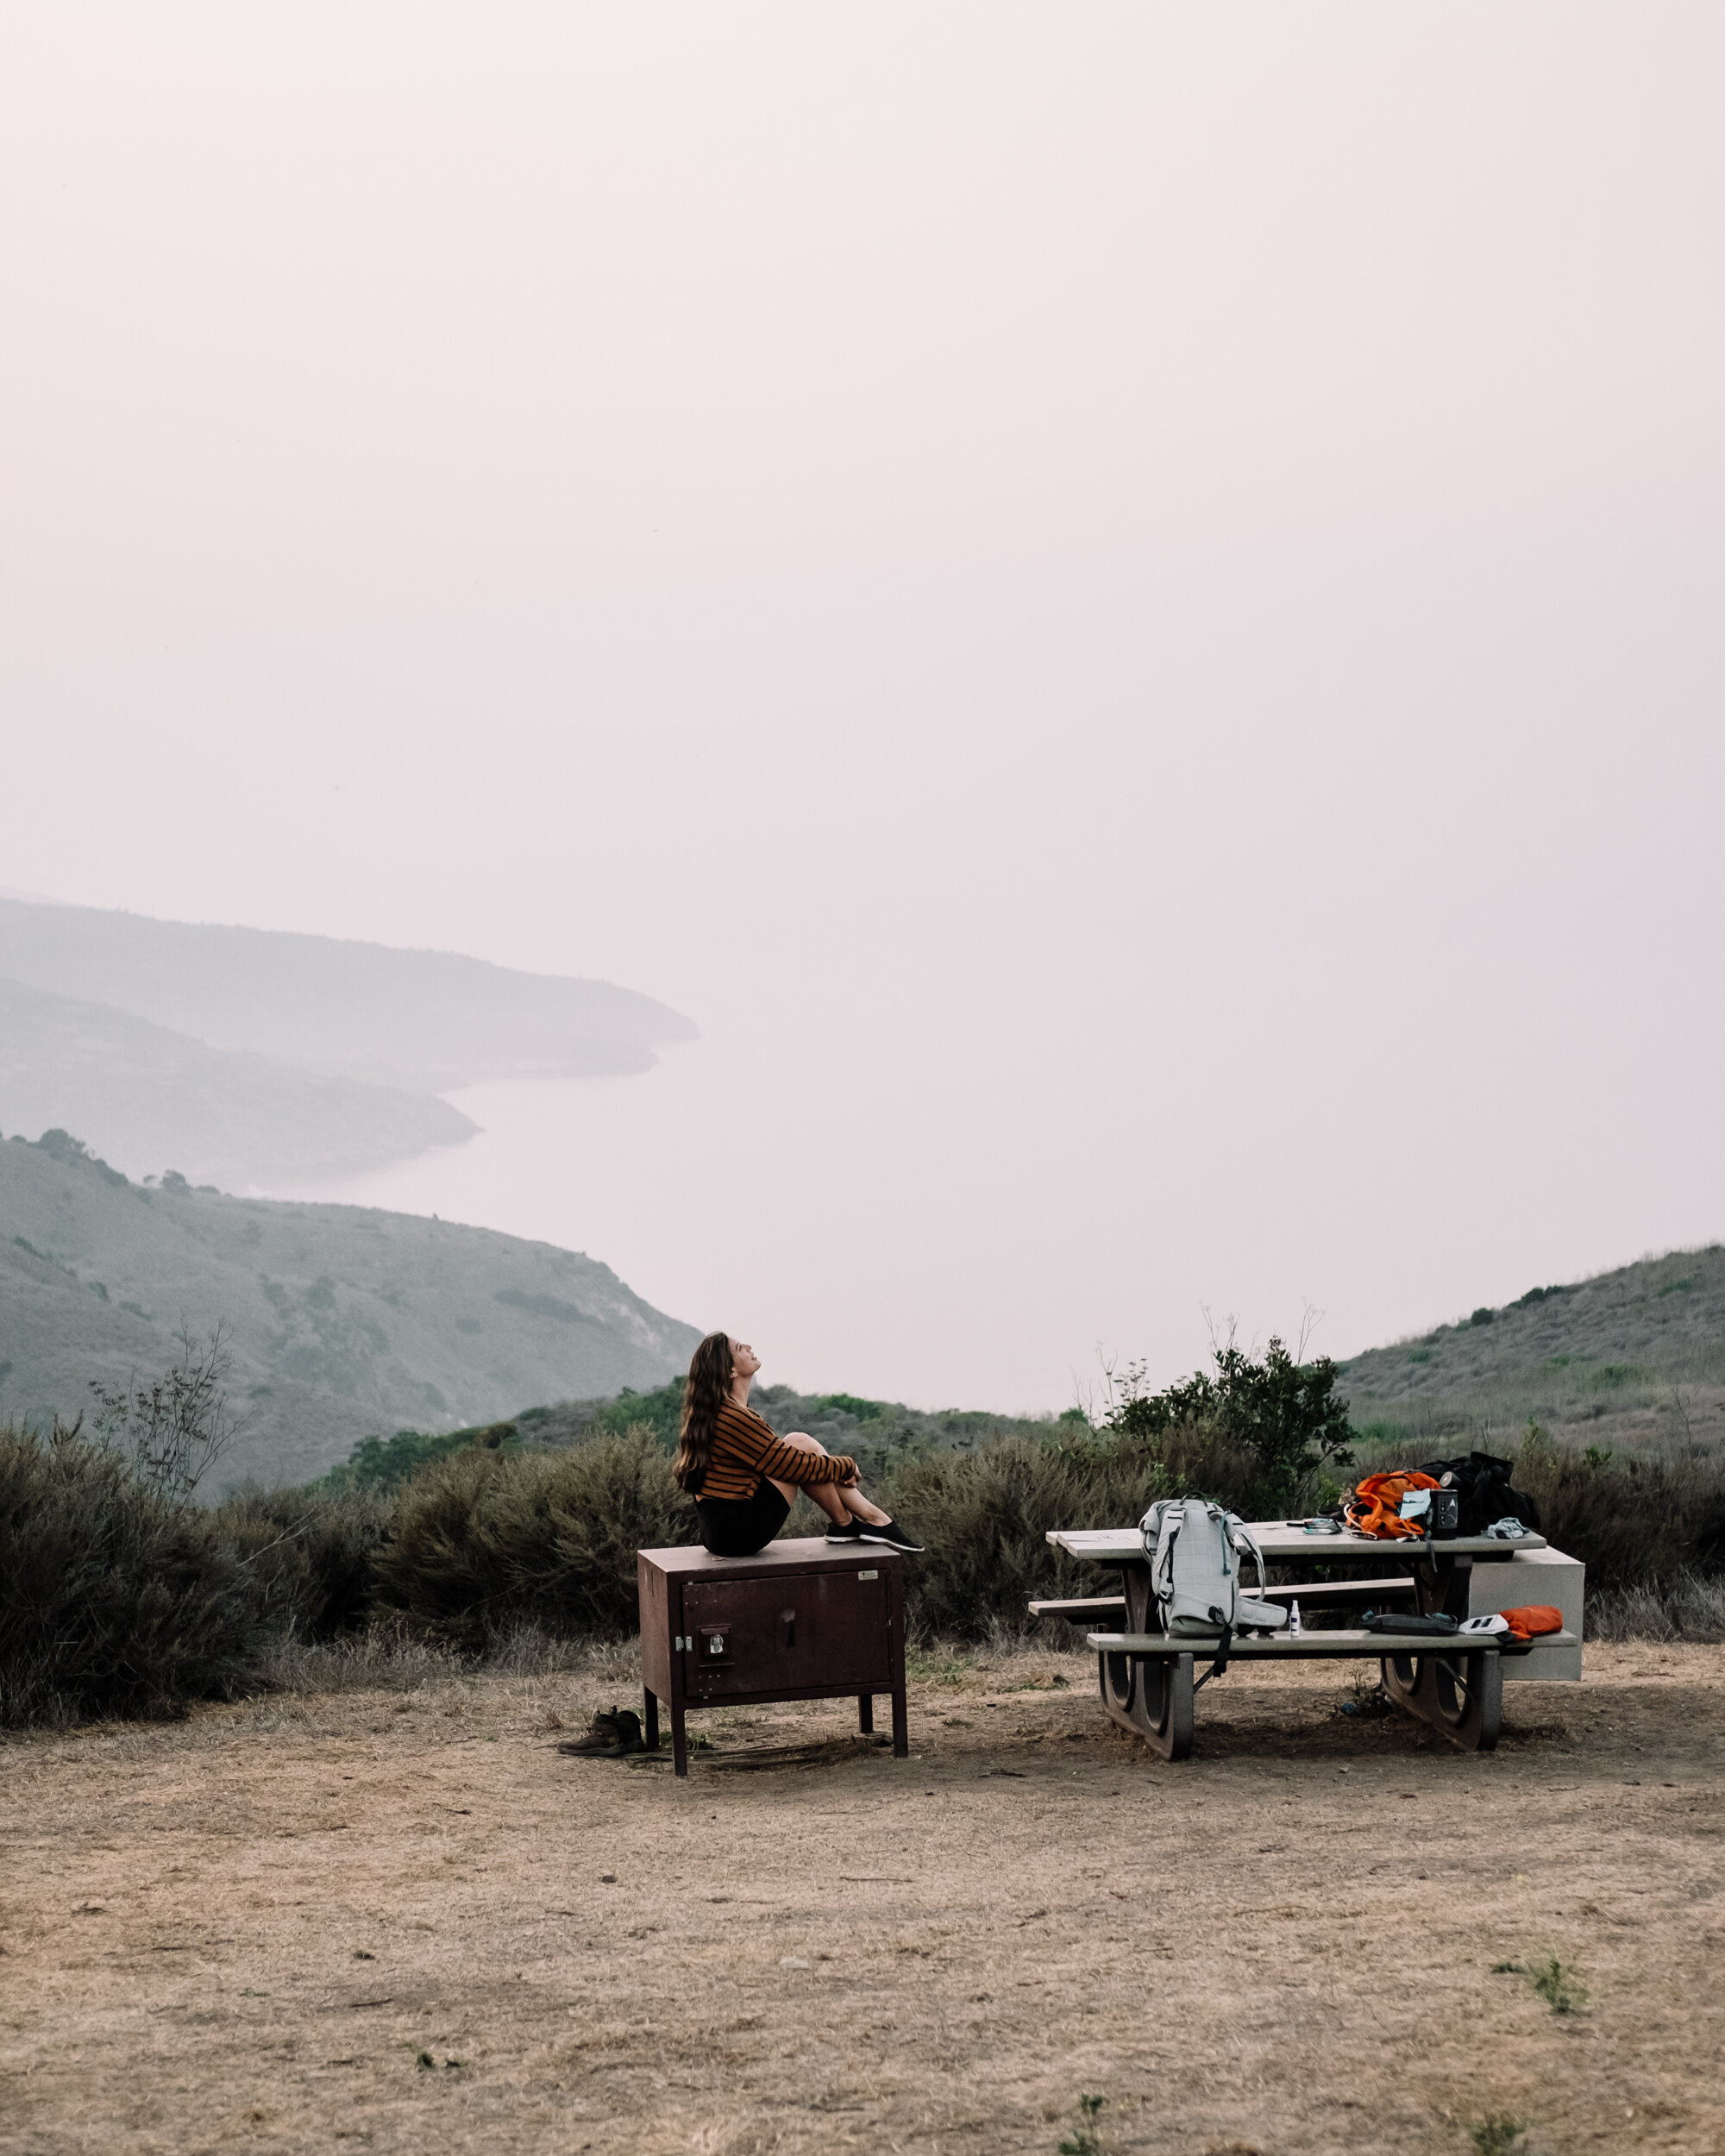 Rachel Off Duty: Girl at Campsite in Channel Islands National Park